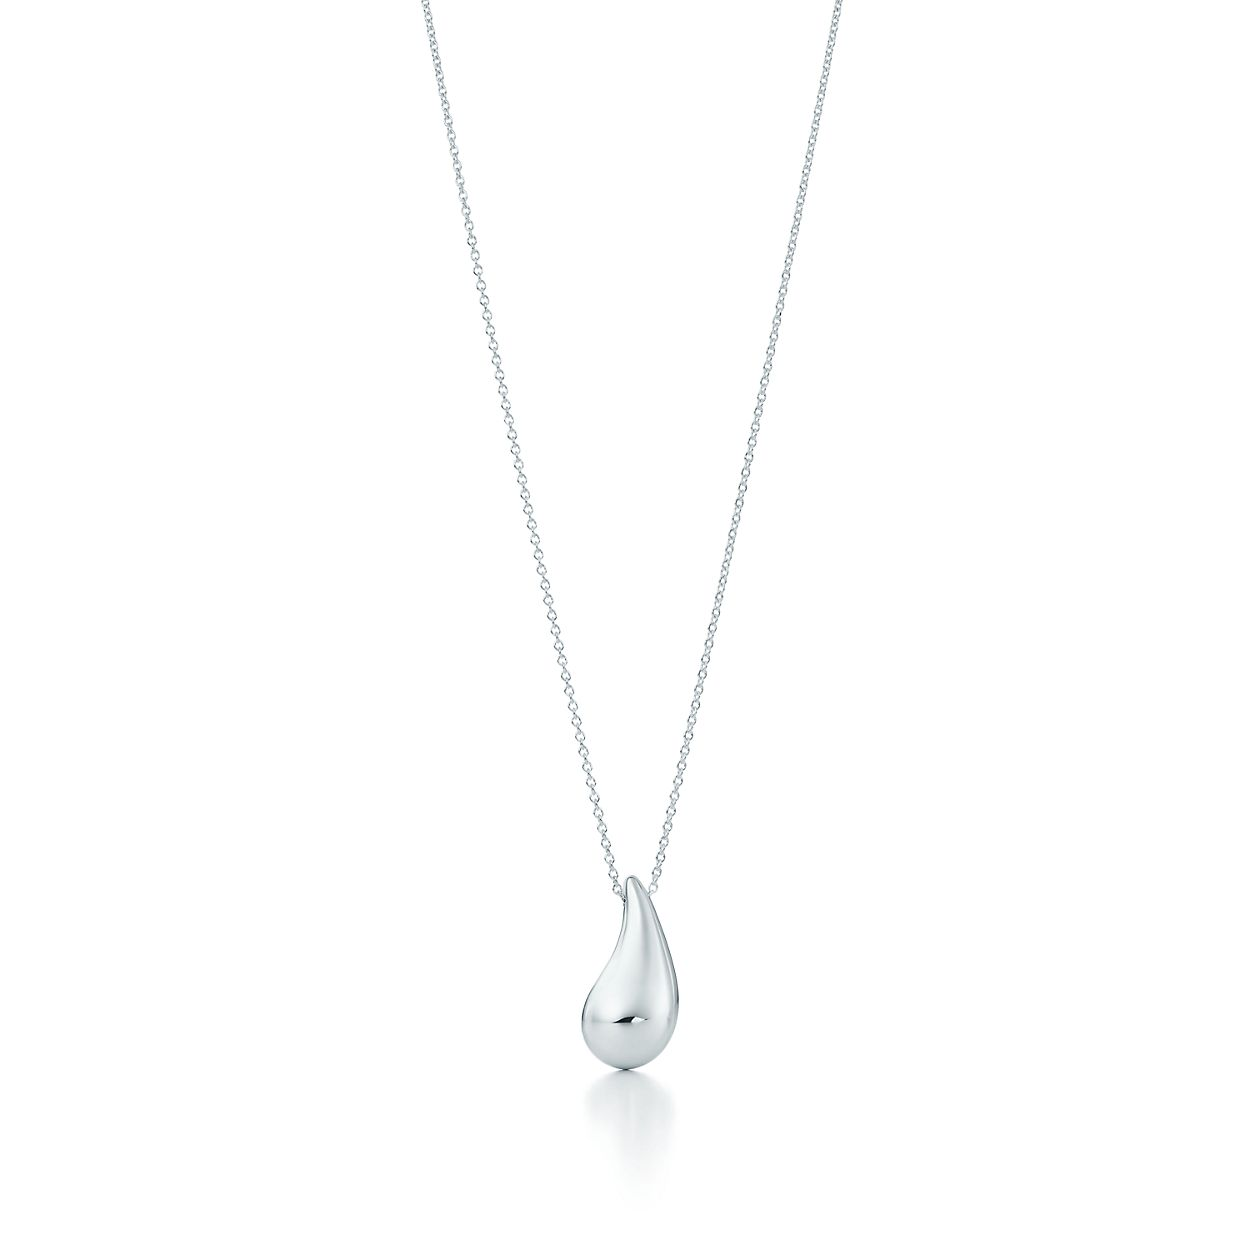 online ewa lewis johnlewis at aquamarine com necklace main pdp rsp john pendant teardrop buyewa